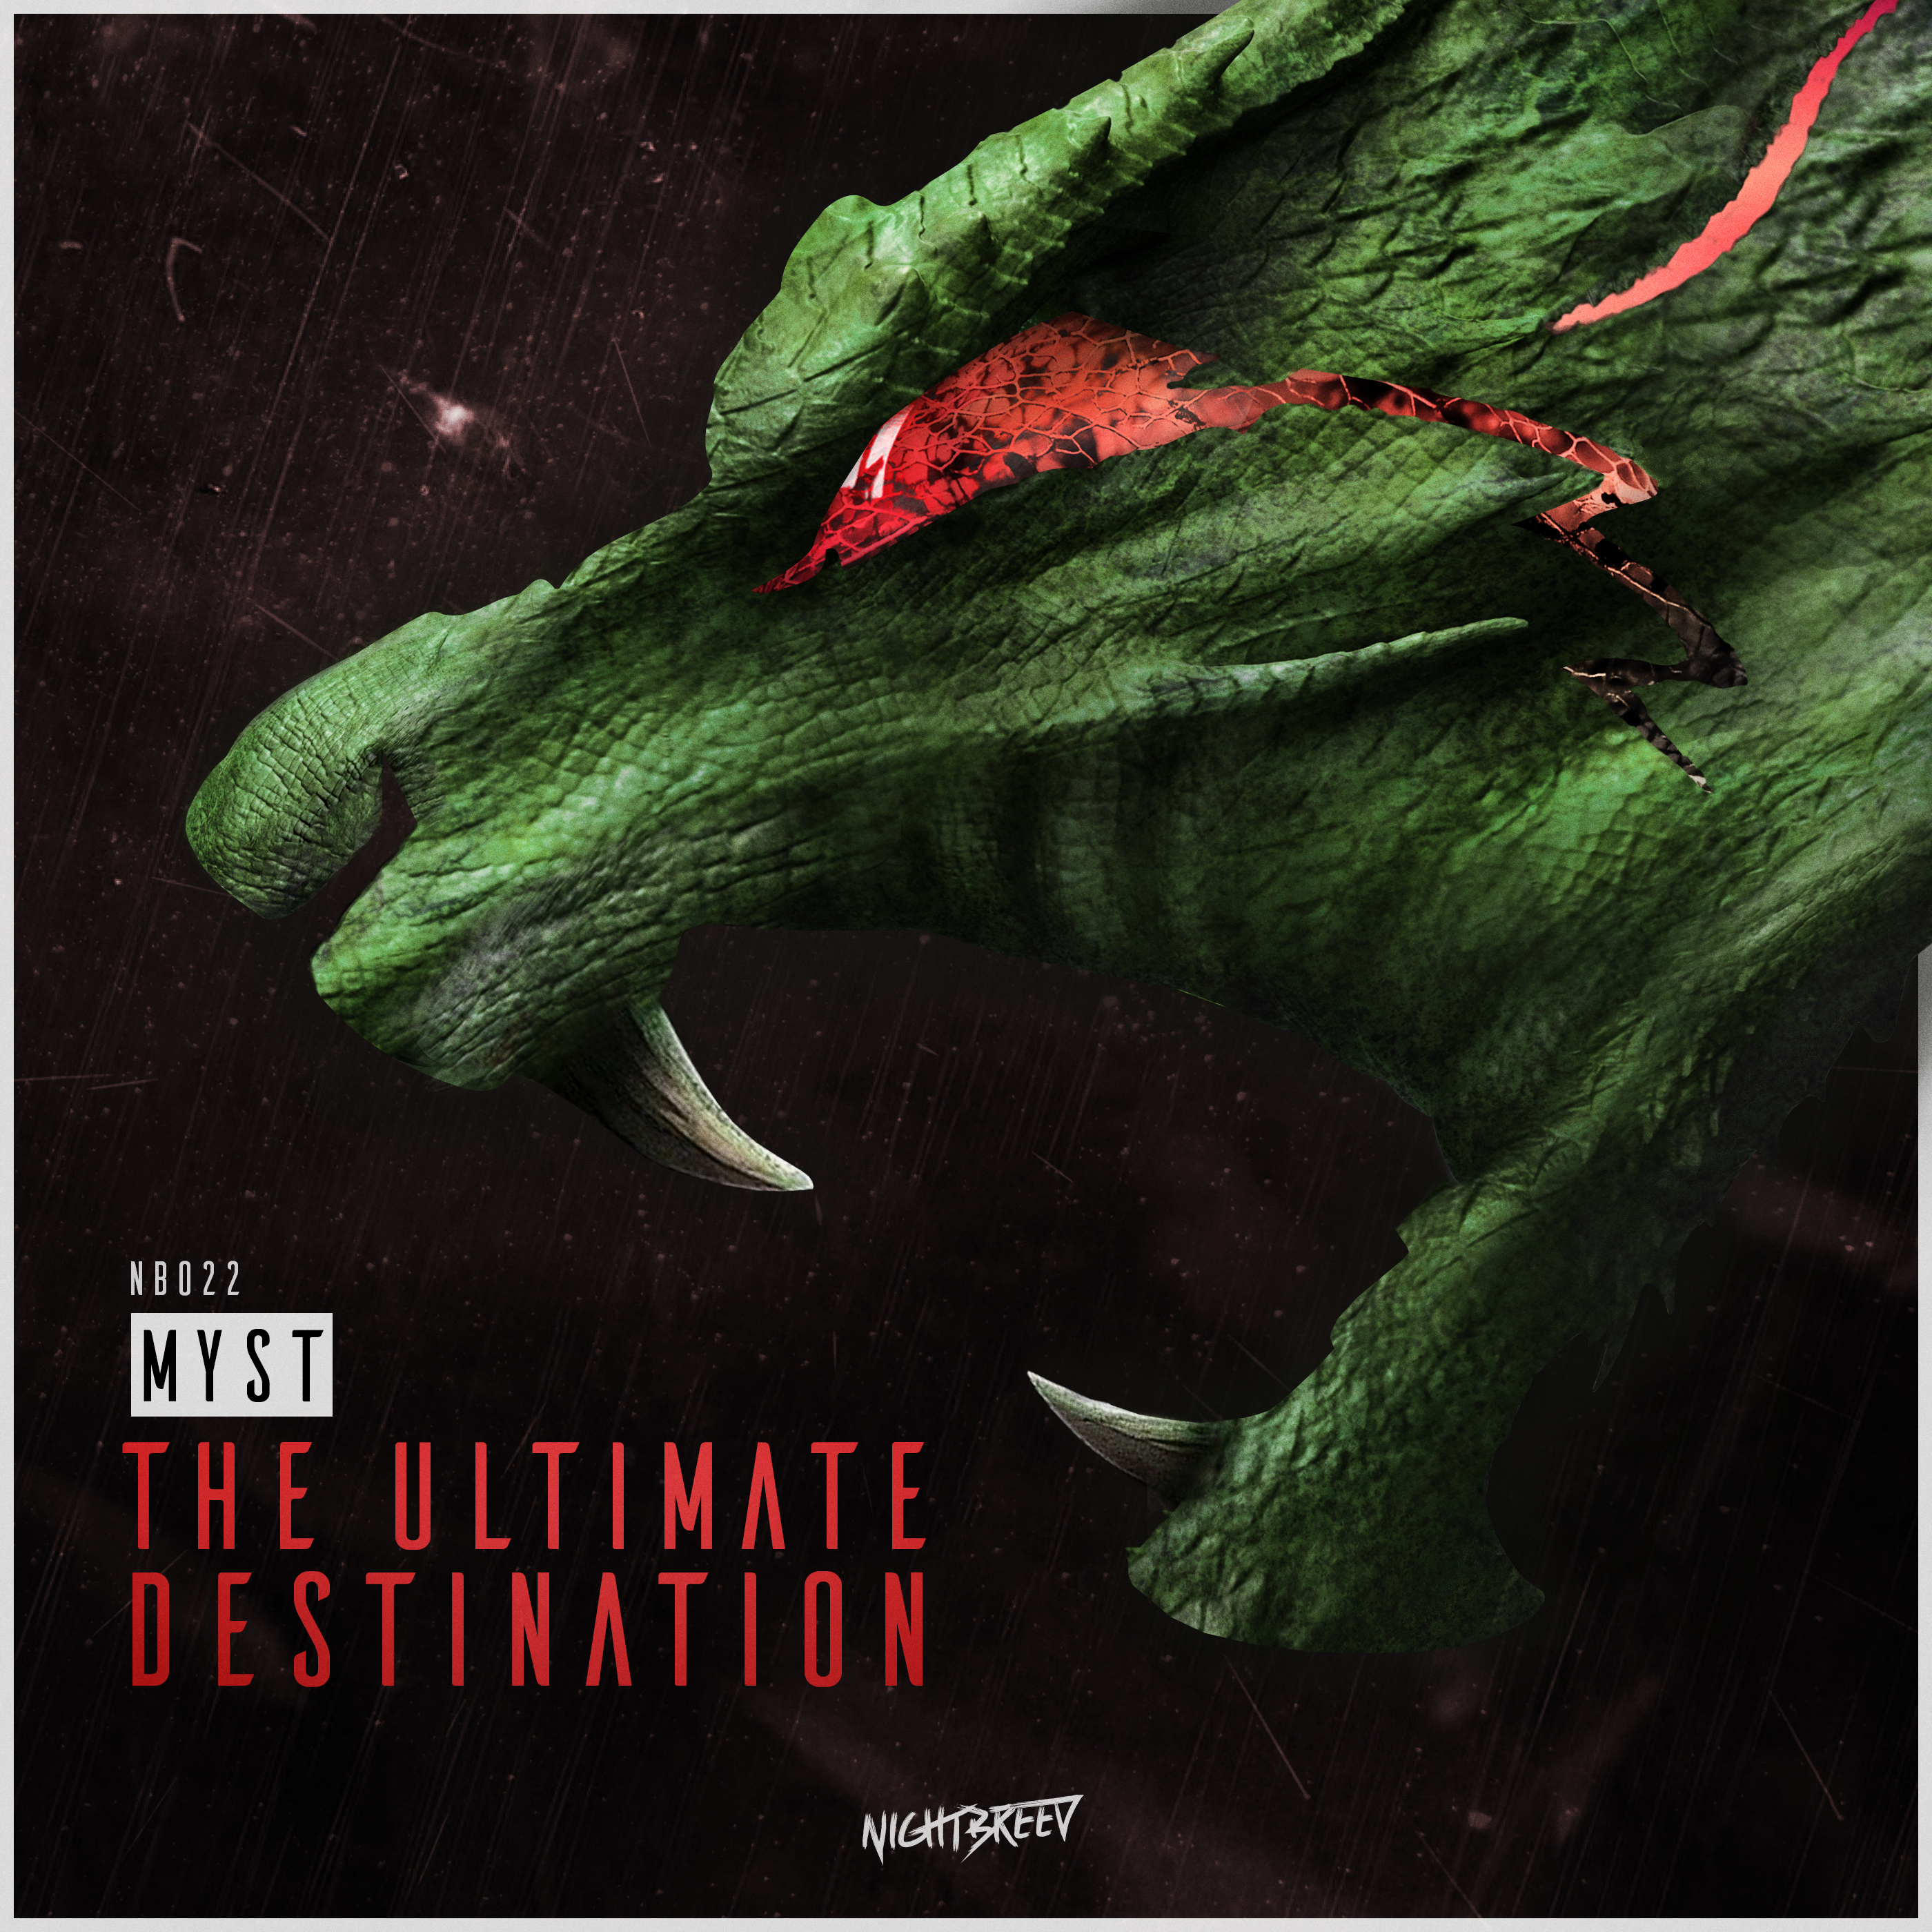 MYST - The Ultimate Destination [NIGHTBREED RECORDS] NB022